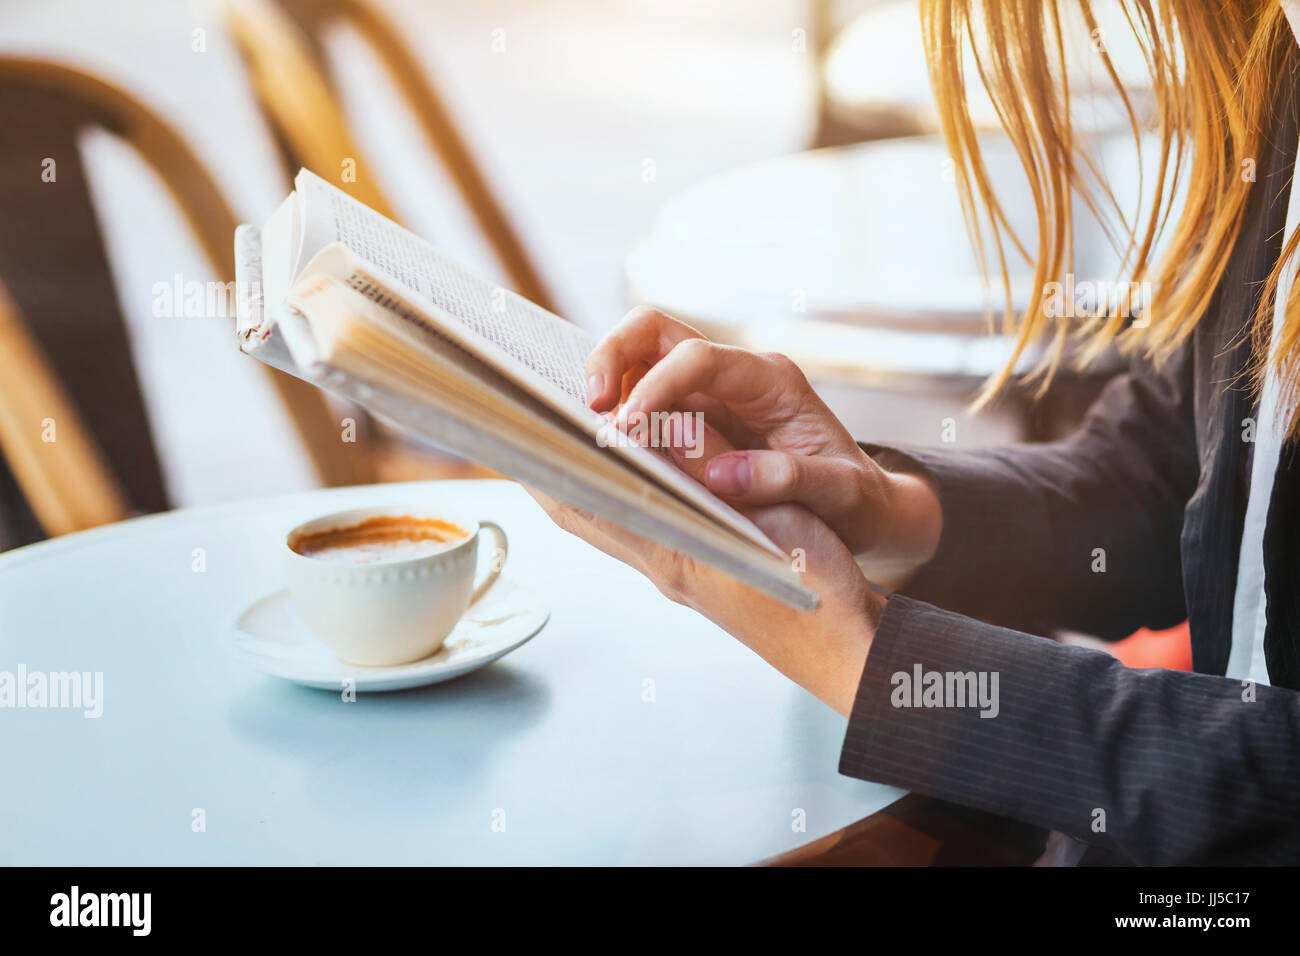 Concept de lecture, Close up of woman mains tenant un livre Photo Stock